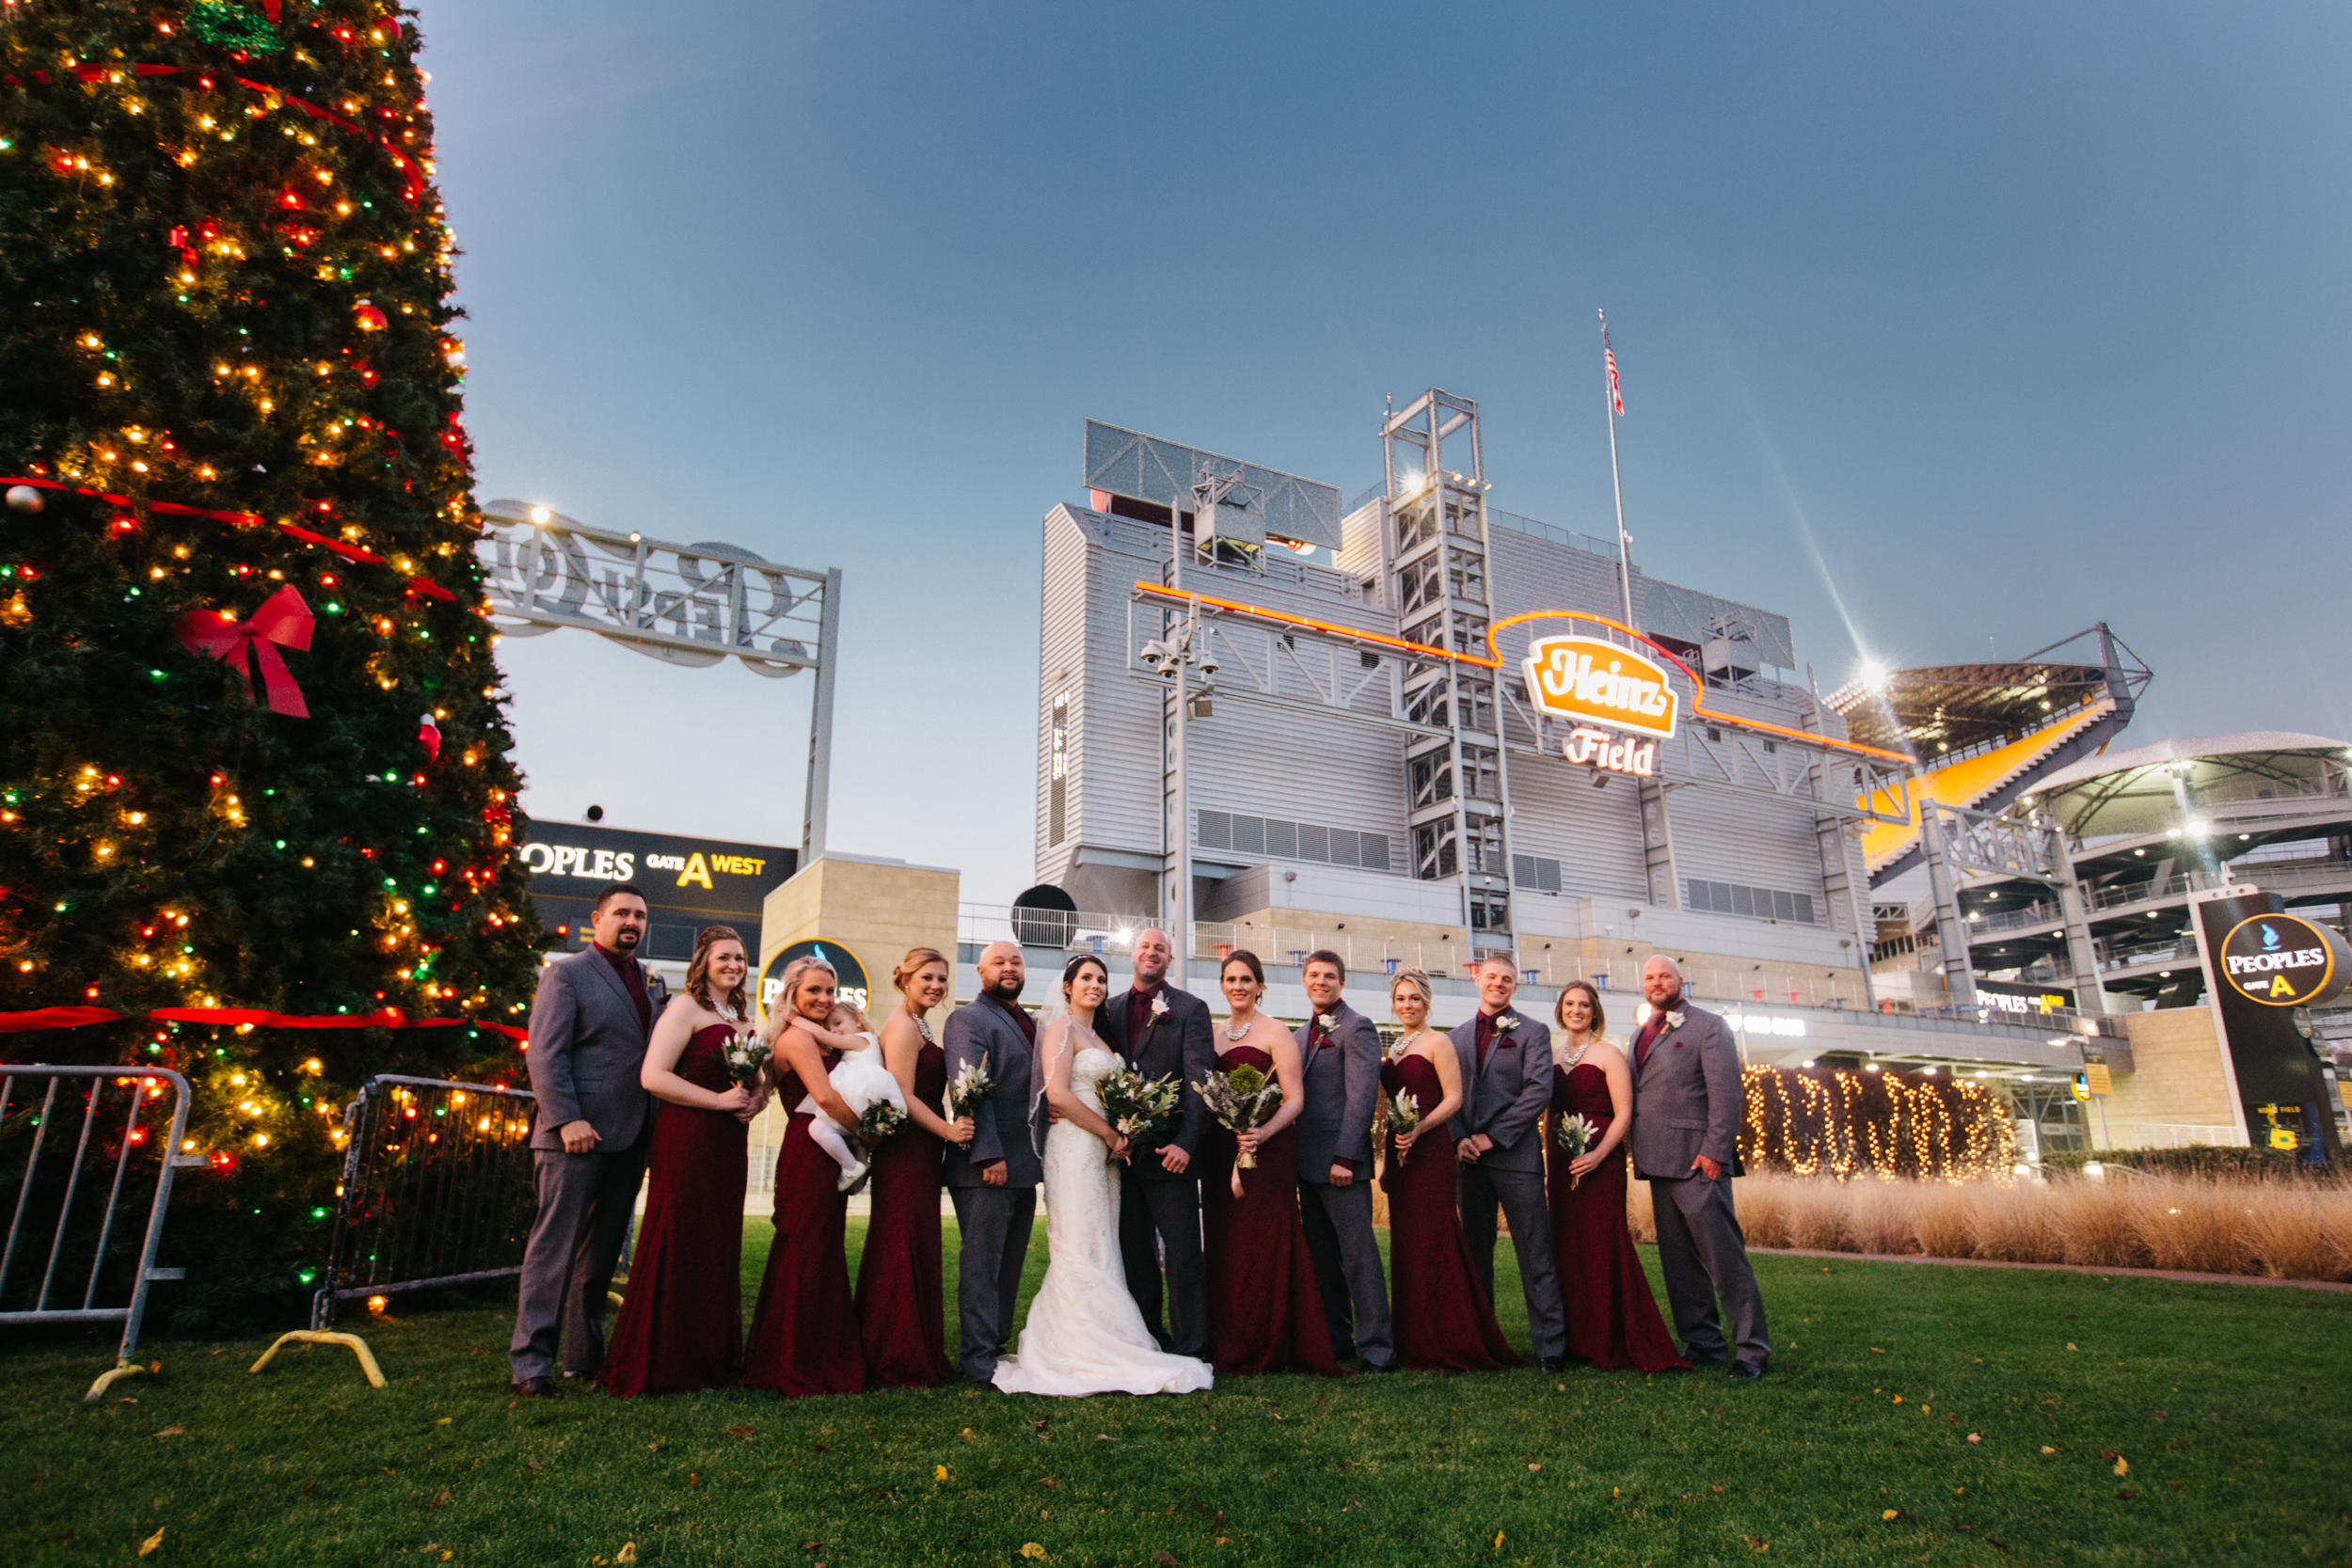 Formal bridal party posed shot at night int he winter in front of Heinz Field with a light Christmas tree.